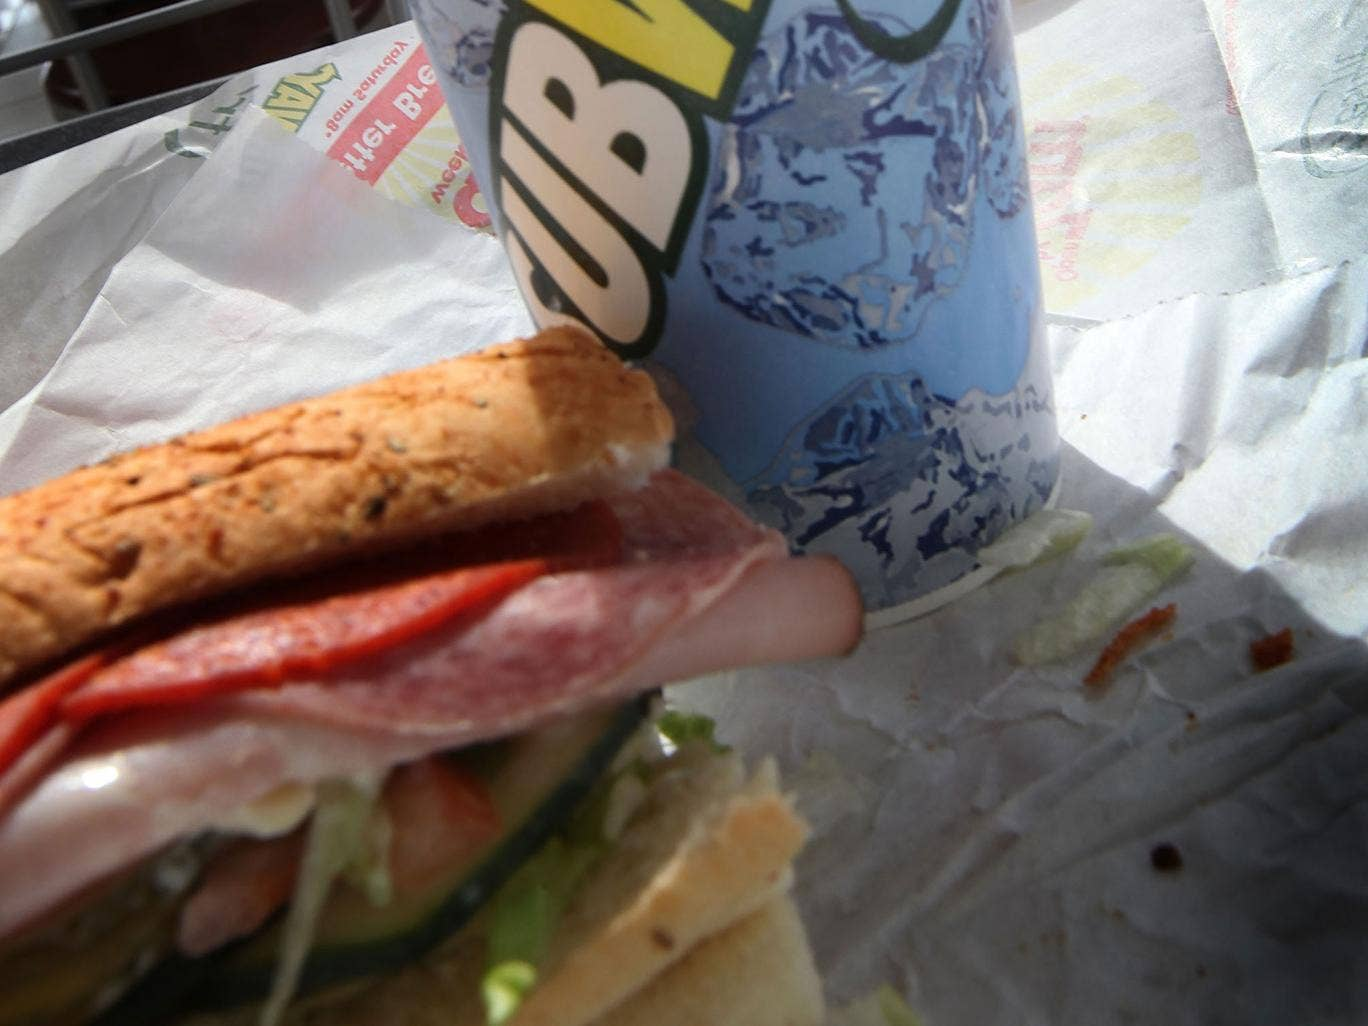 The men, John Farley, of Evesham and Charles Noah Pendrack, of Ocean City, are taking legal action in order to claim compensation and try to bring about a change in Subway's practices.